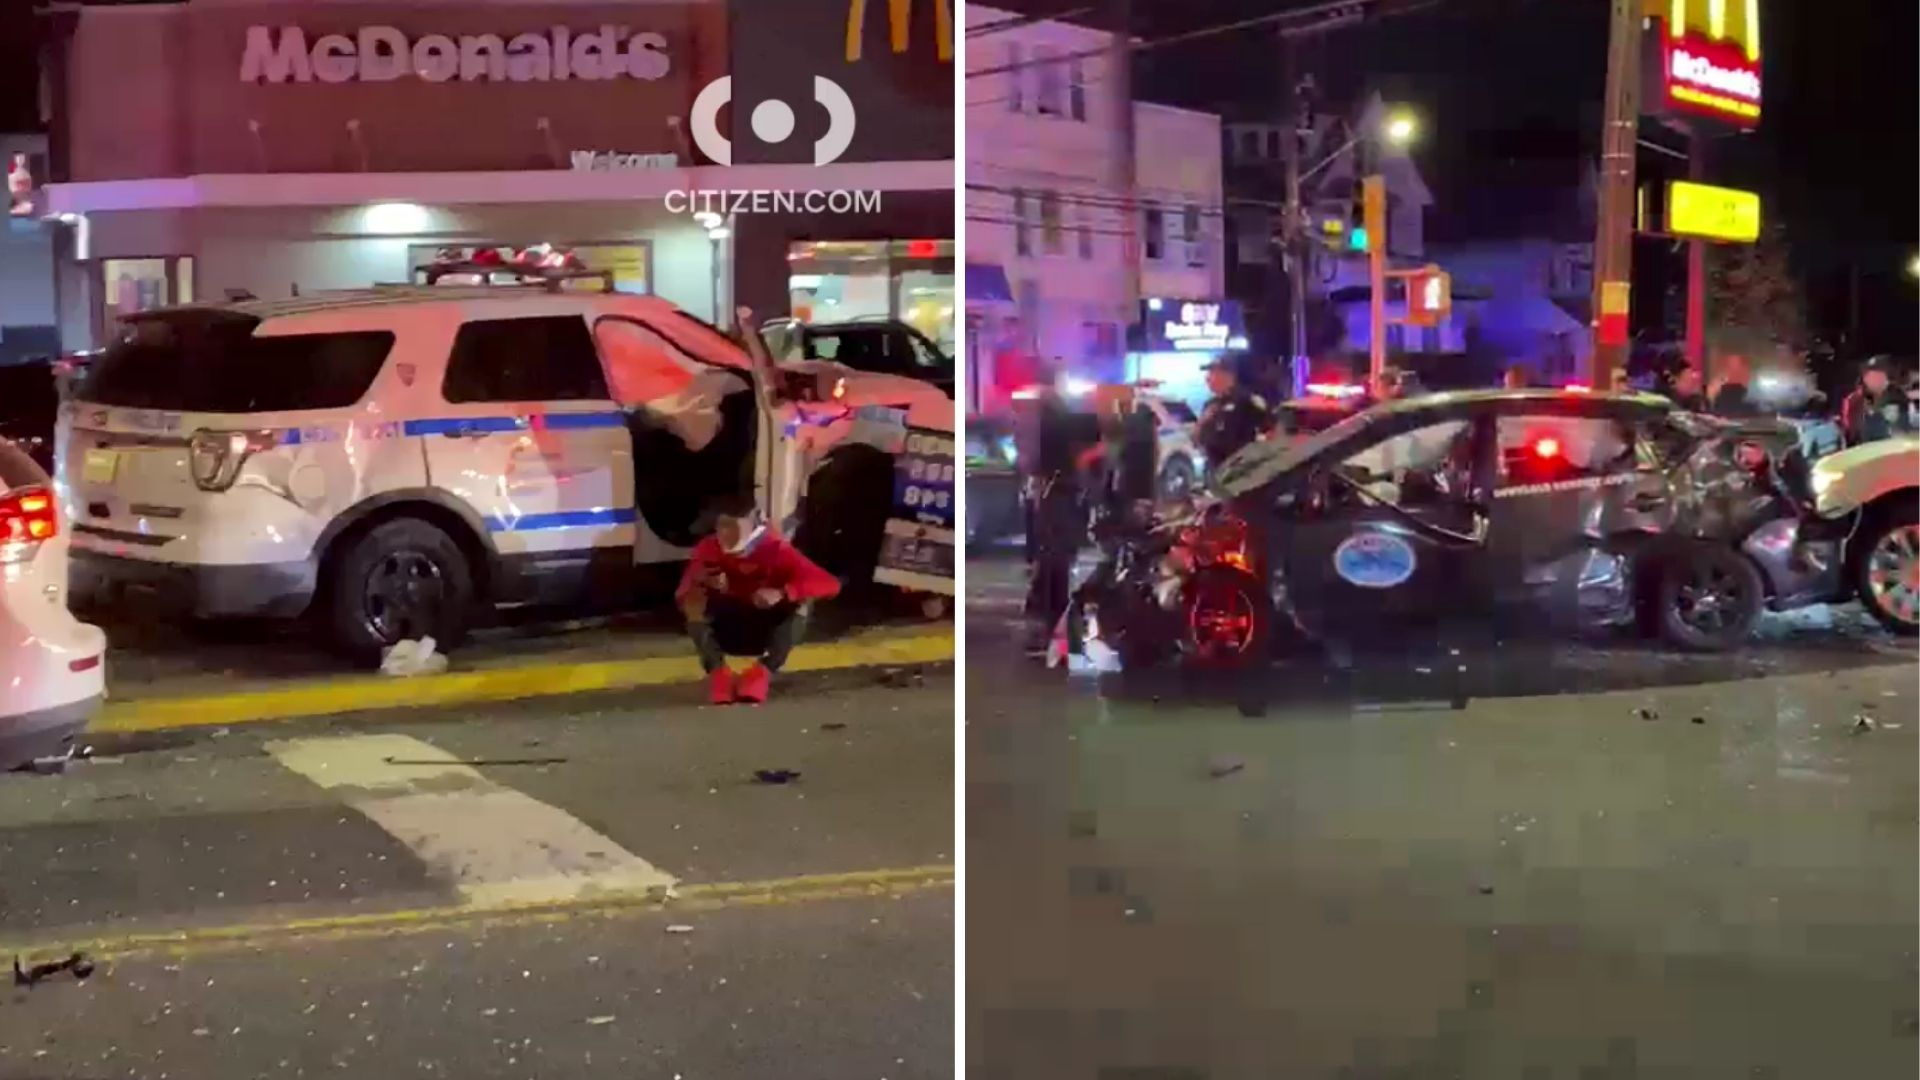 Multiple vehicles involved in a crash that sent a woman, 72, to the hospital seriously injured in Staten Island on Sunday night, May 2, 2021, police said.